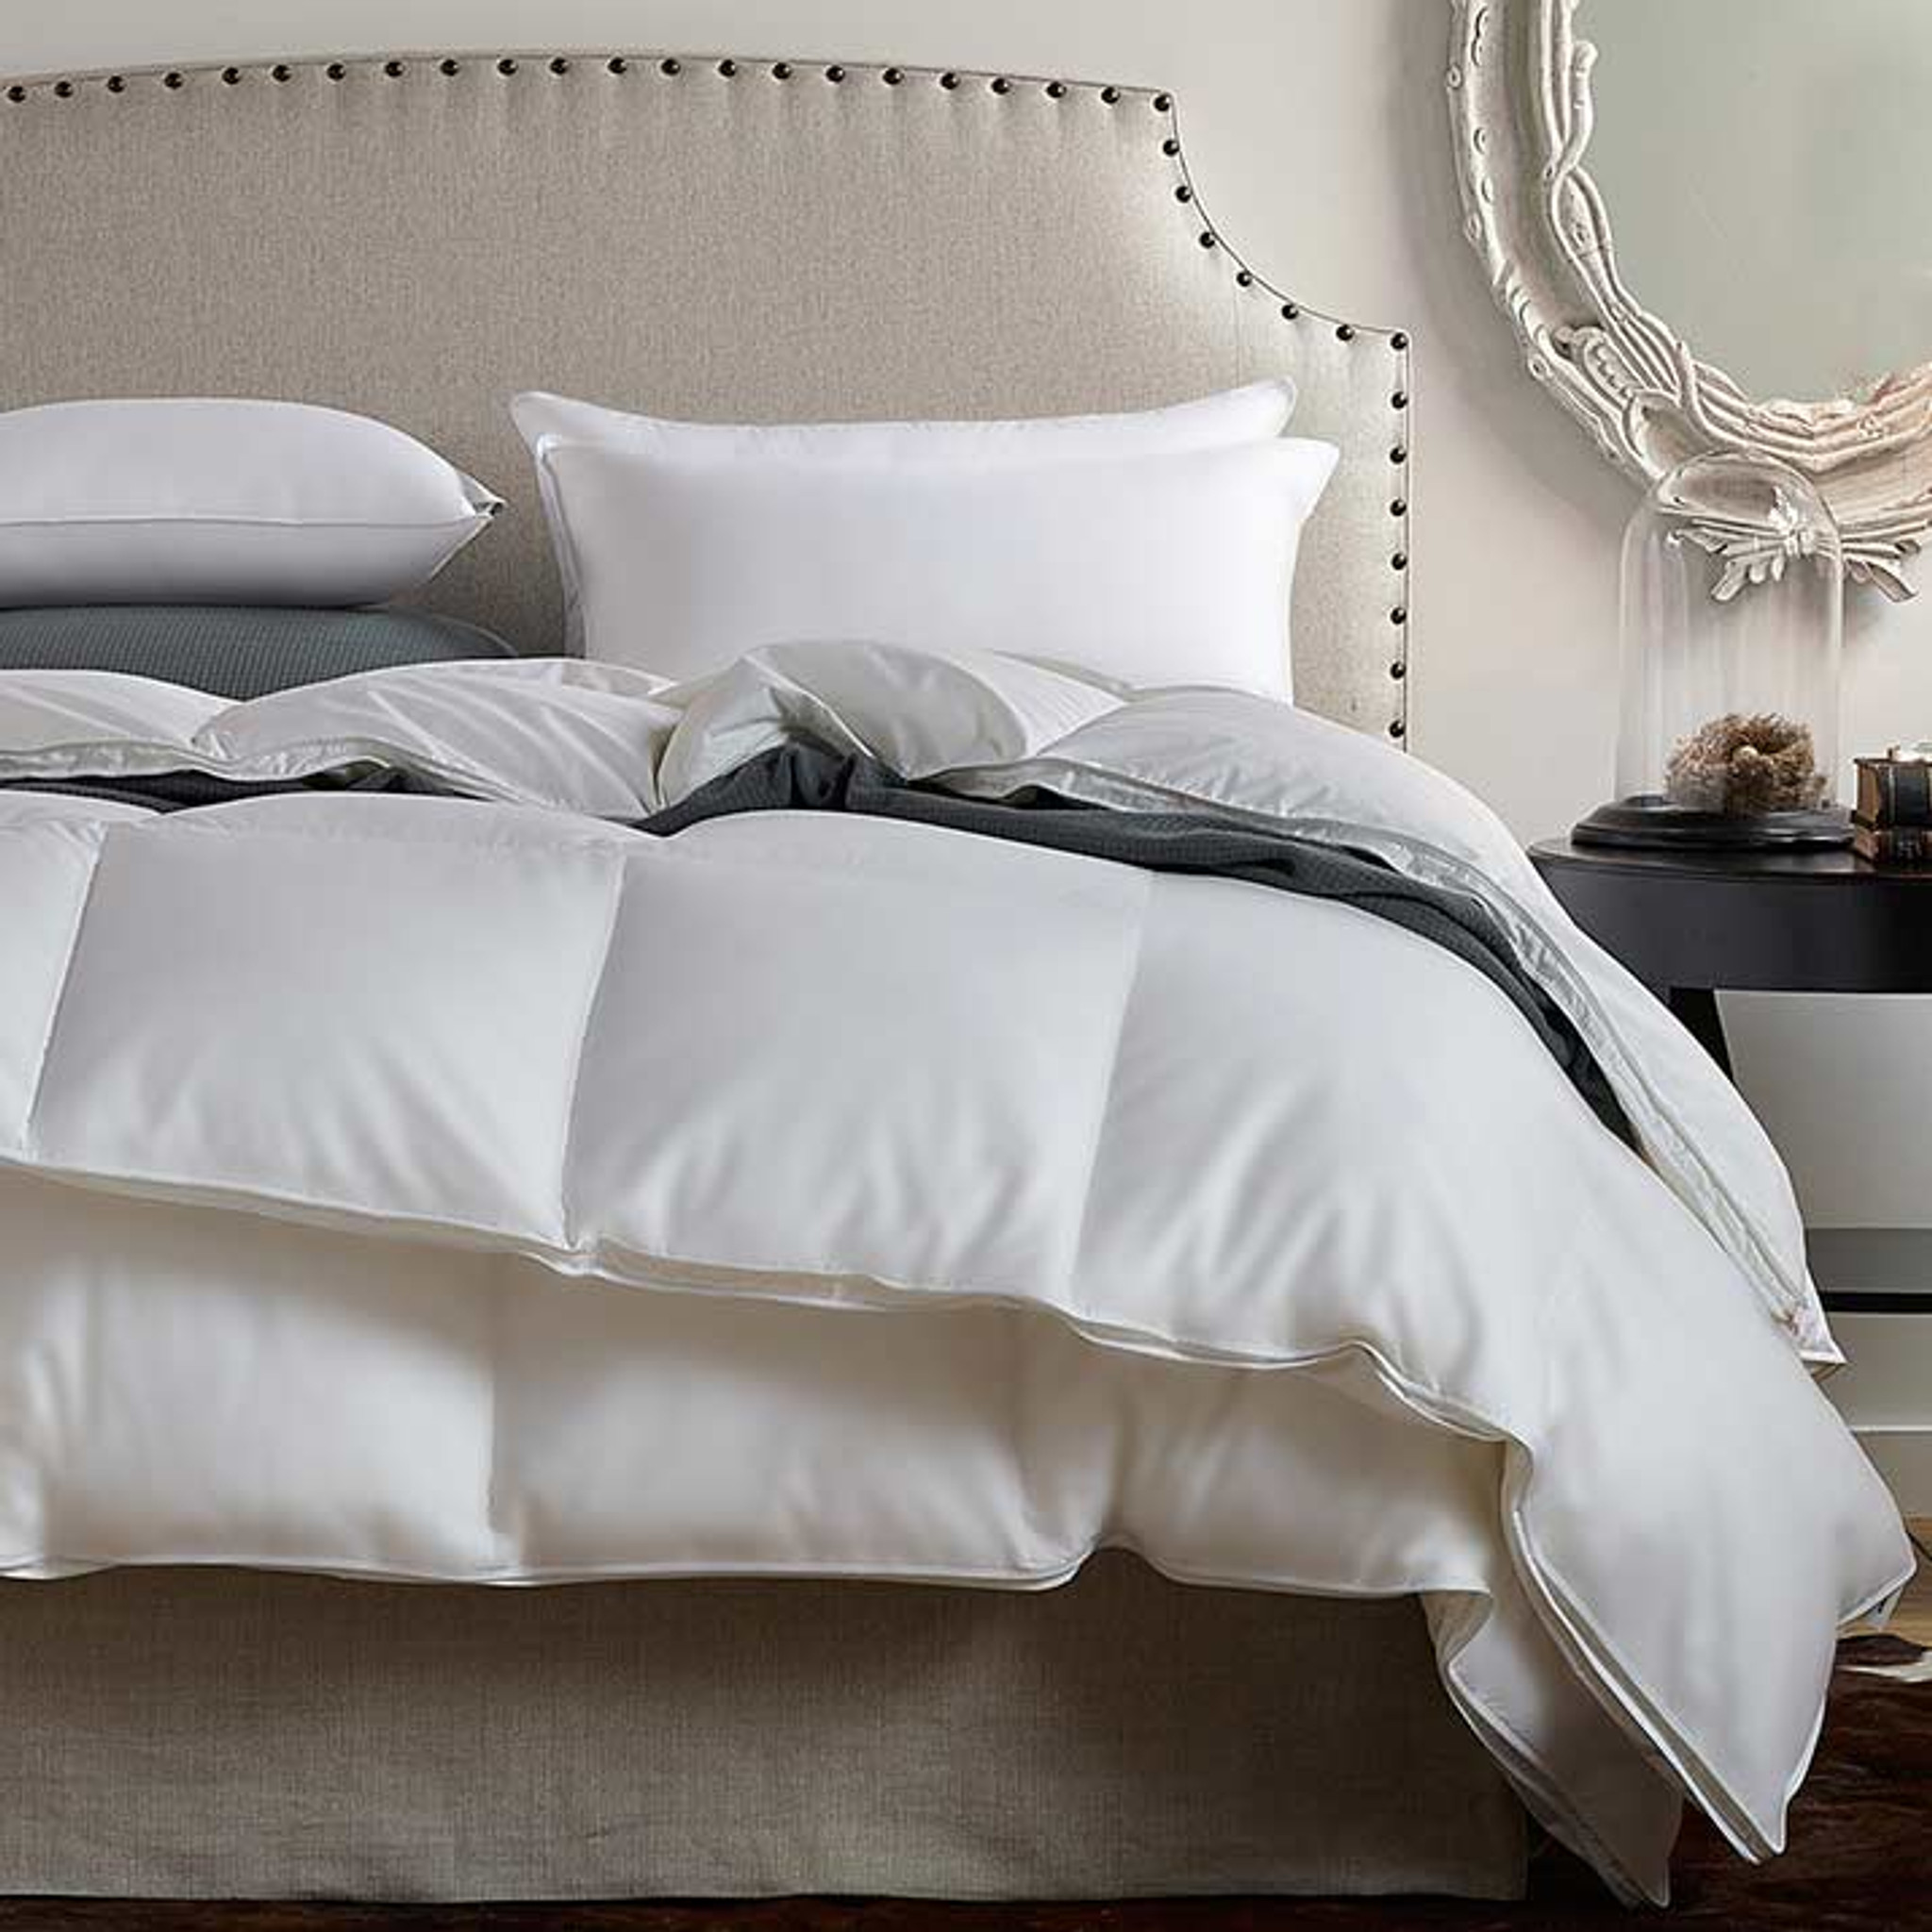 Down Comforter - is it time to replace yours?